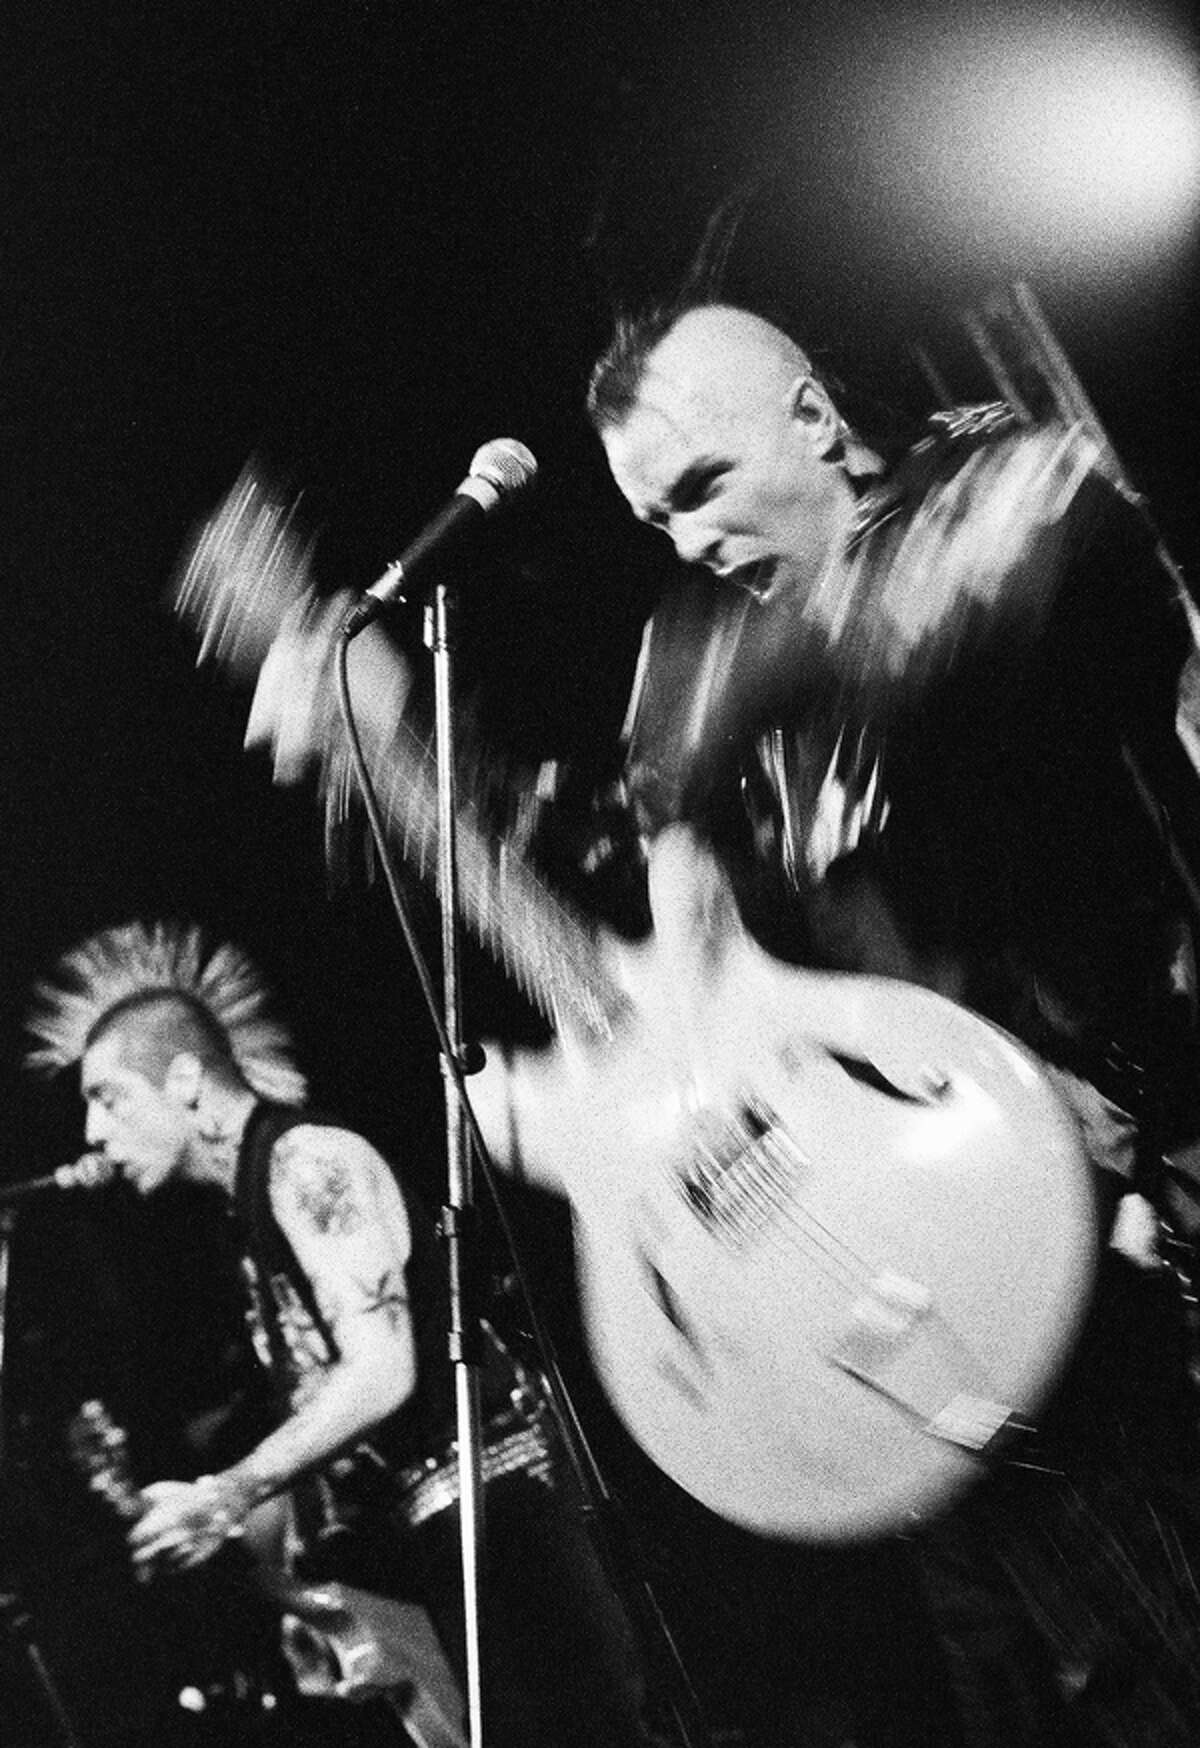 Joe Putrock's photograph of Rancid is part of ?Impasse + Motion: Ten Photographers? Journeys Through Instants in Music,? which opens Saturday, June 4, and runs through July 30 at Saratoga Arts, 320 Broadway in Saratoga Springs. (Courtesy the artist)